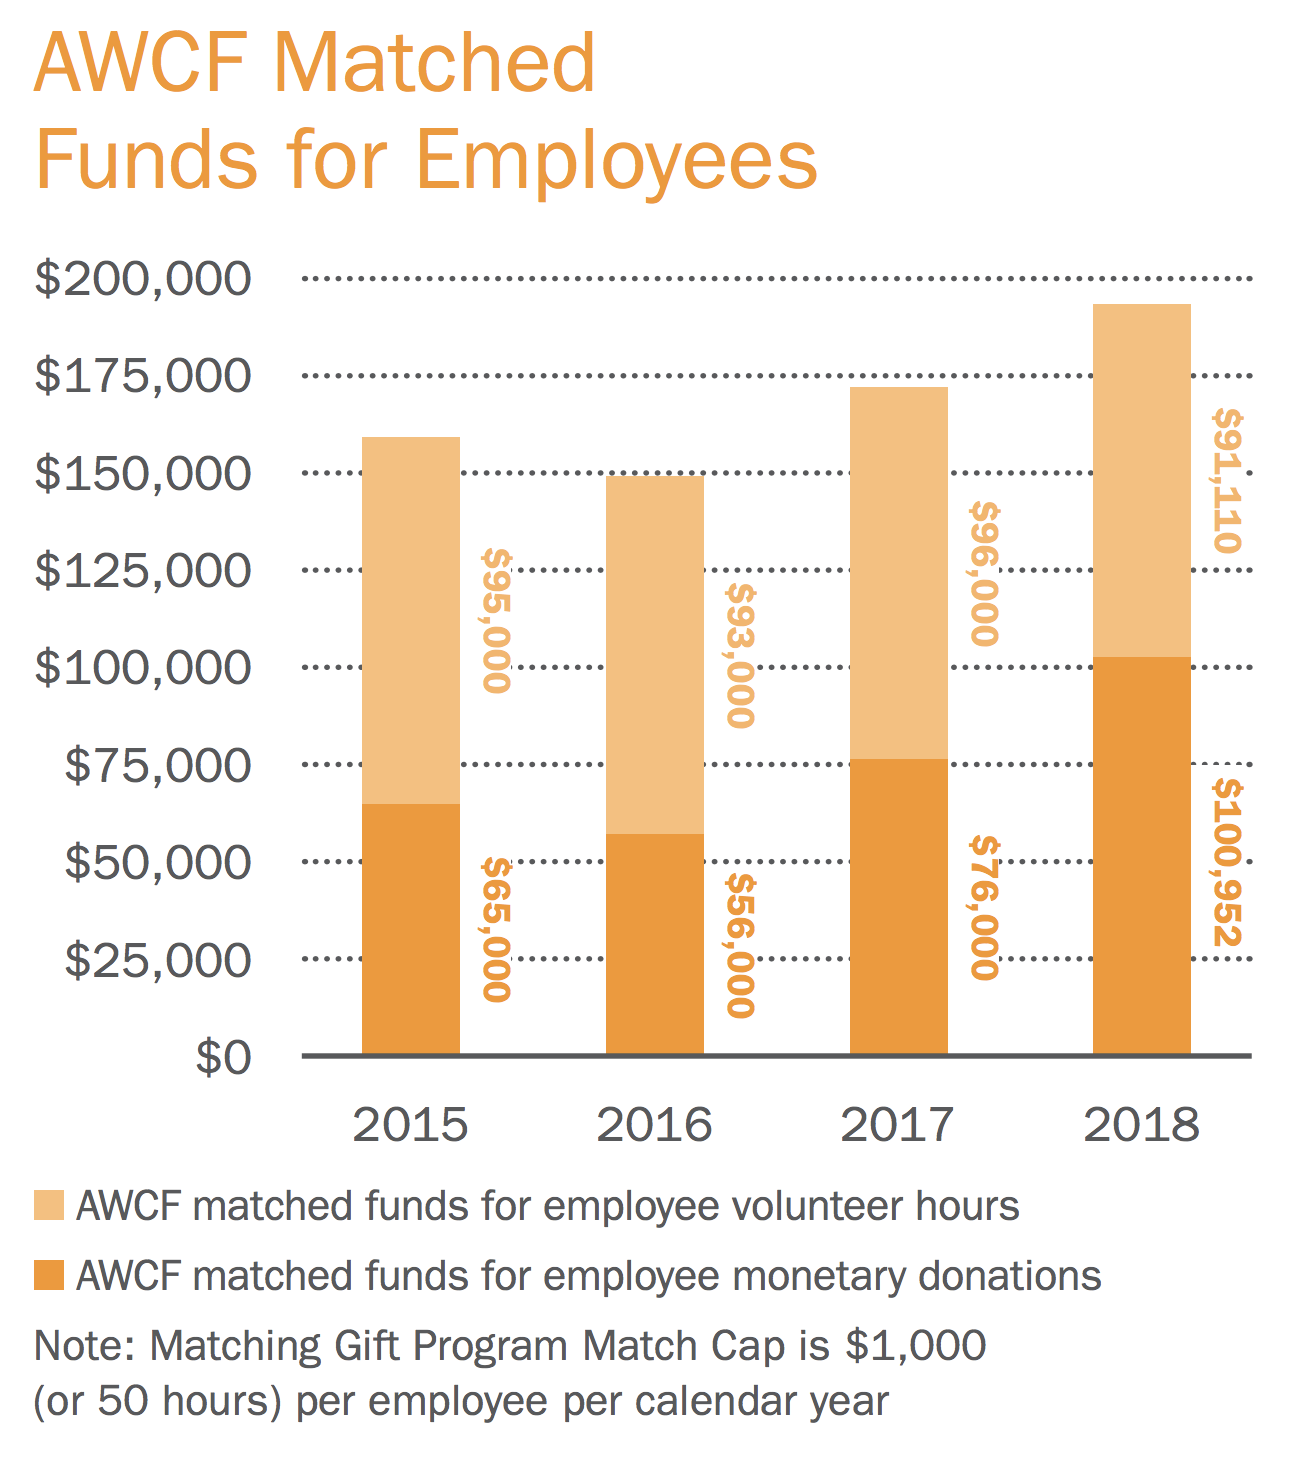 AWCF Matched Funds for Employees